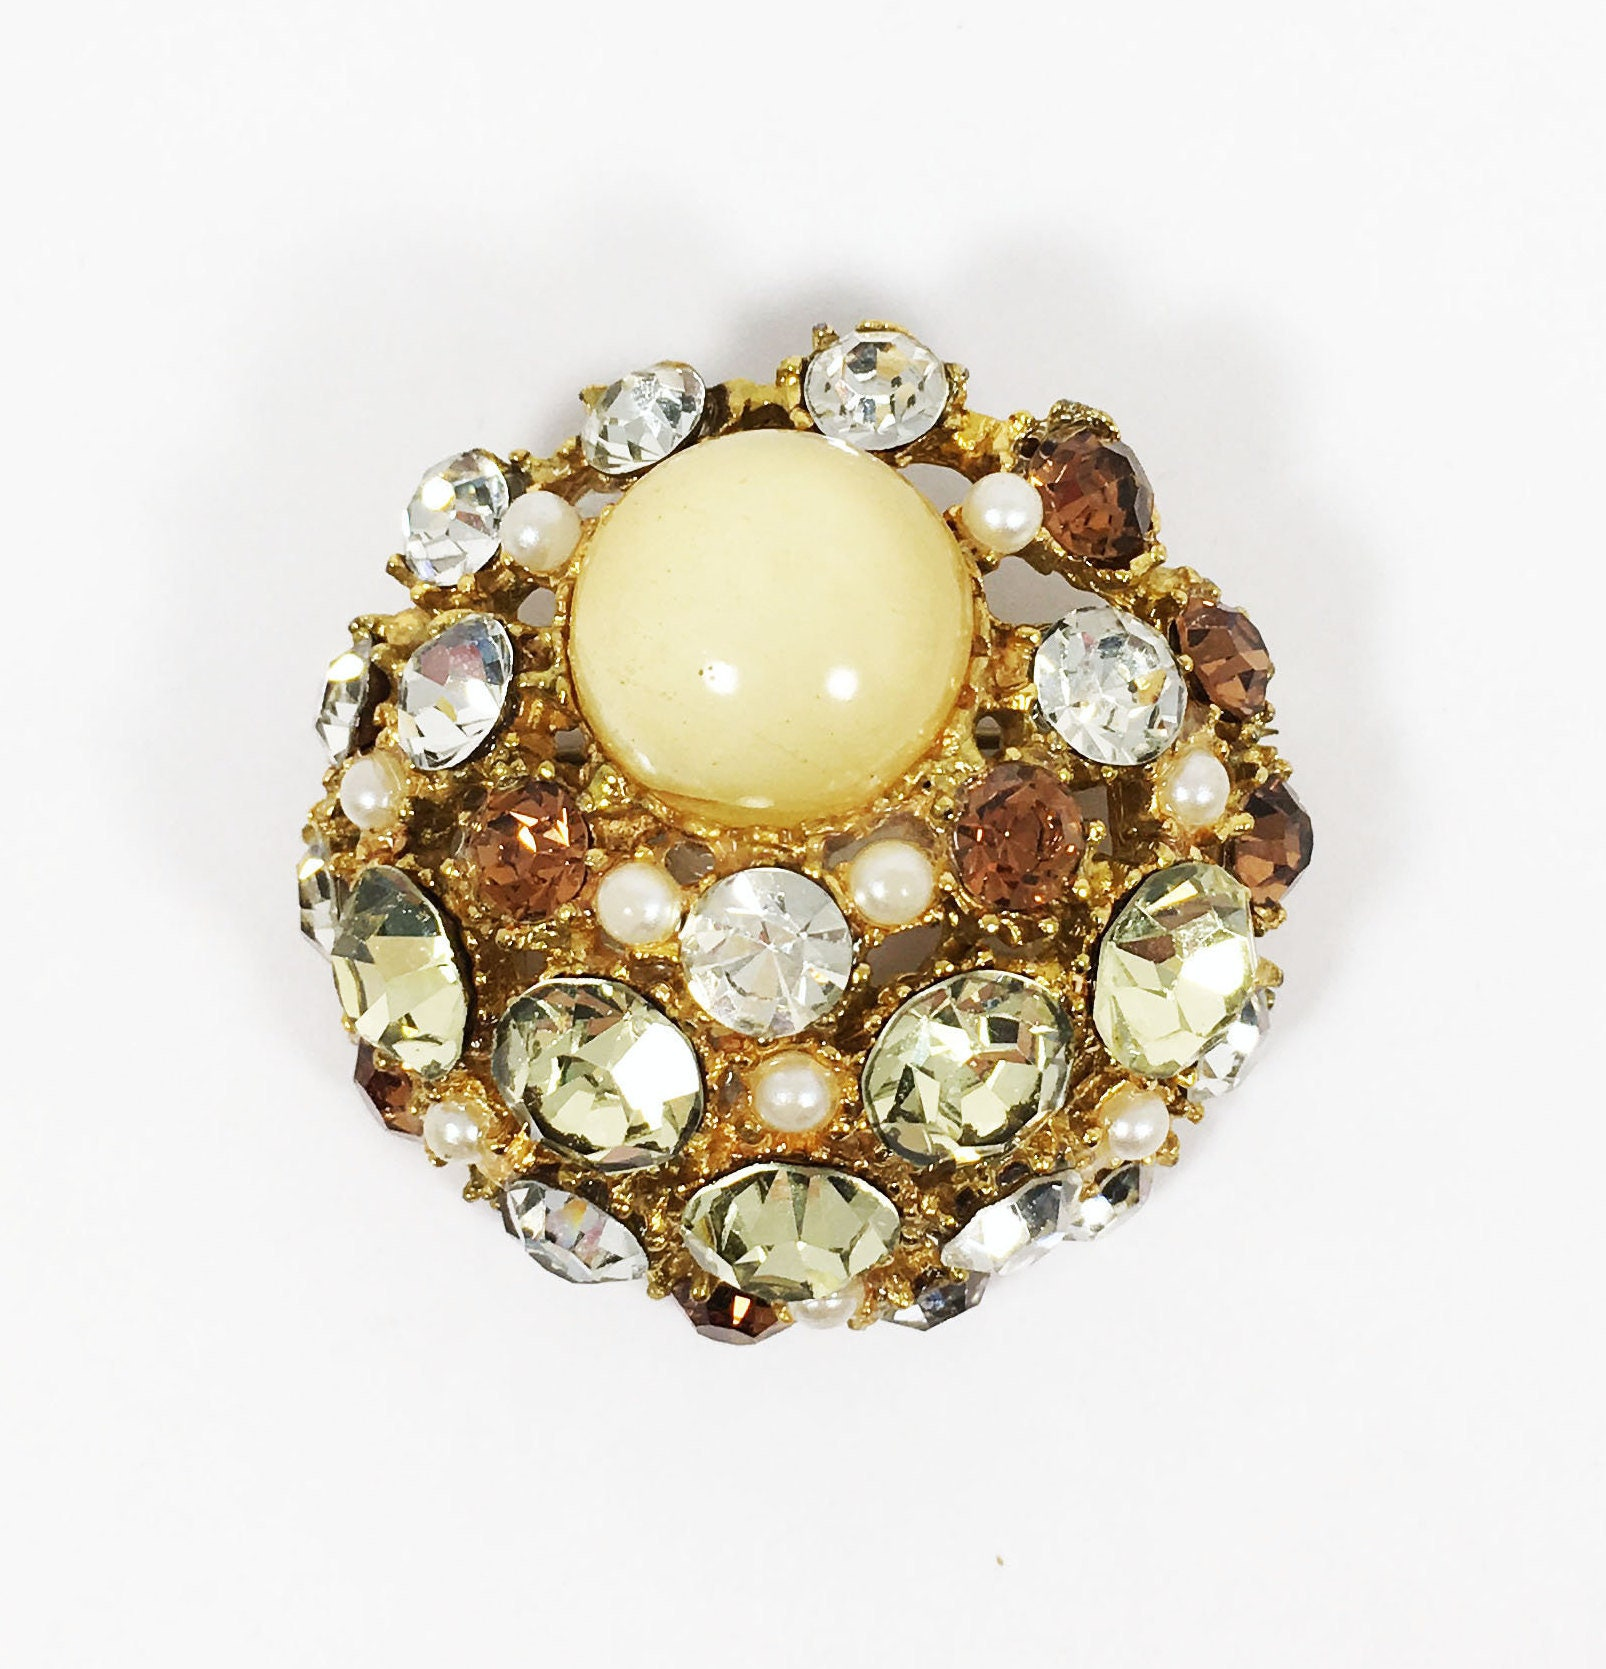 Small Vintage Pin Round Key Shape White Rhinestones in Silver Toned Setting from 1970/'s